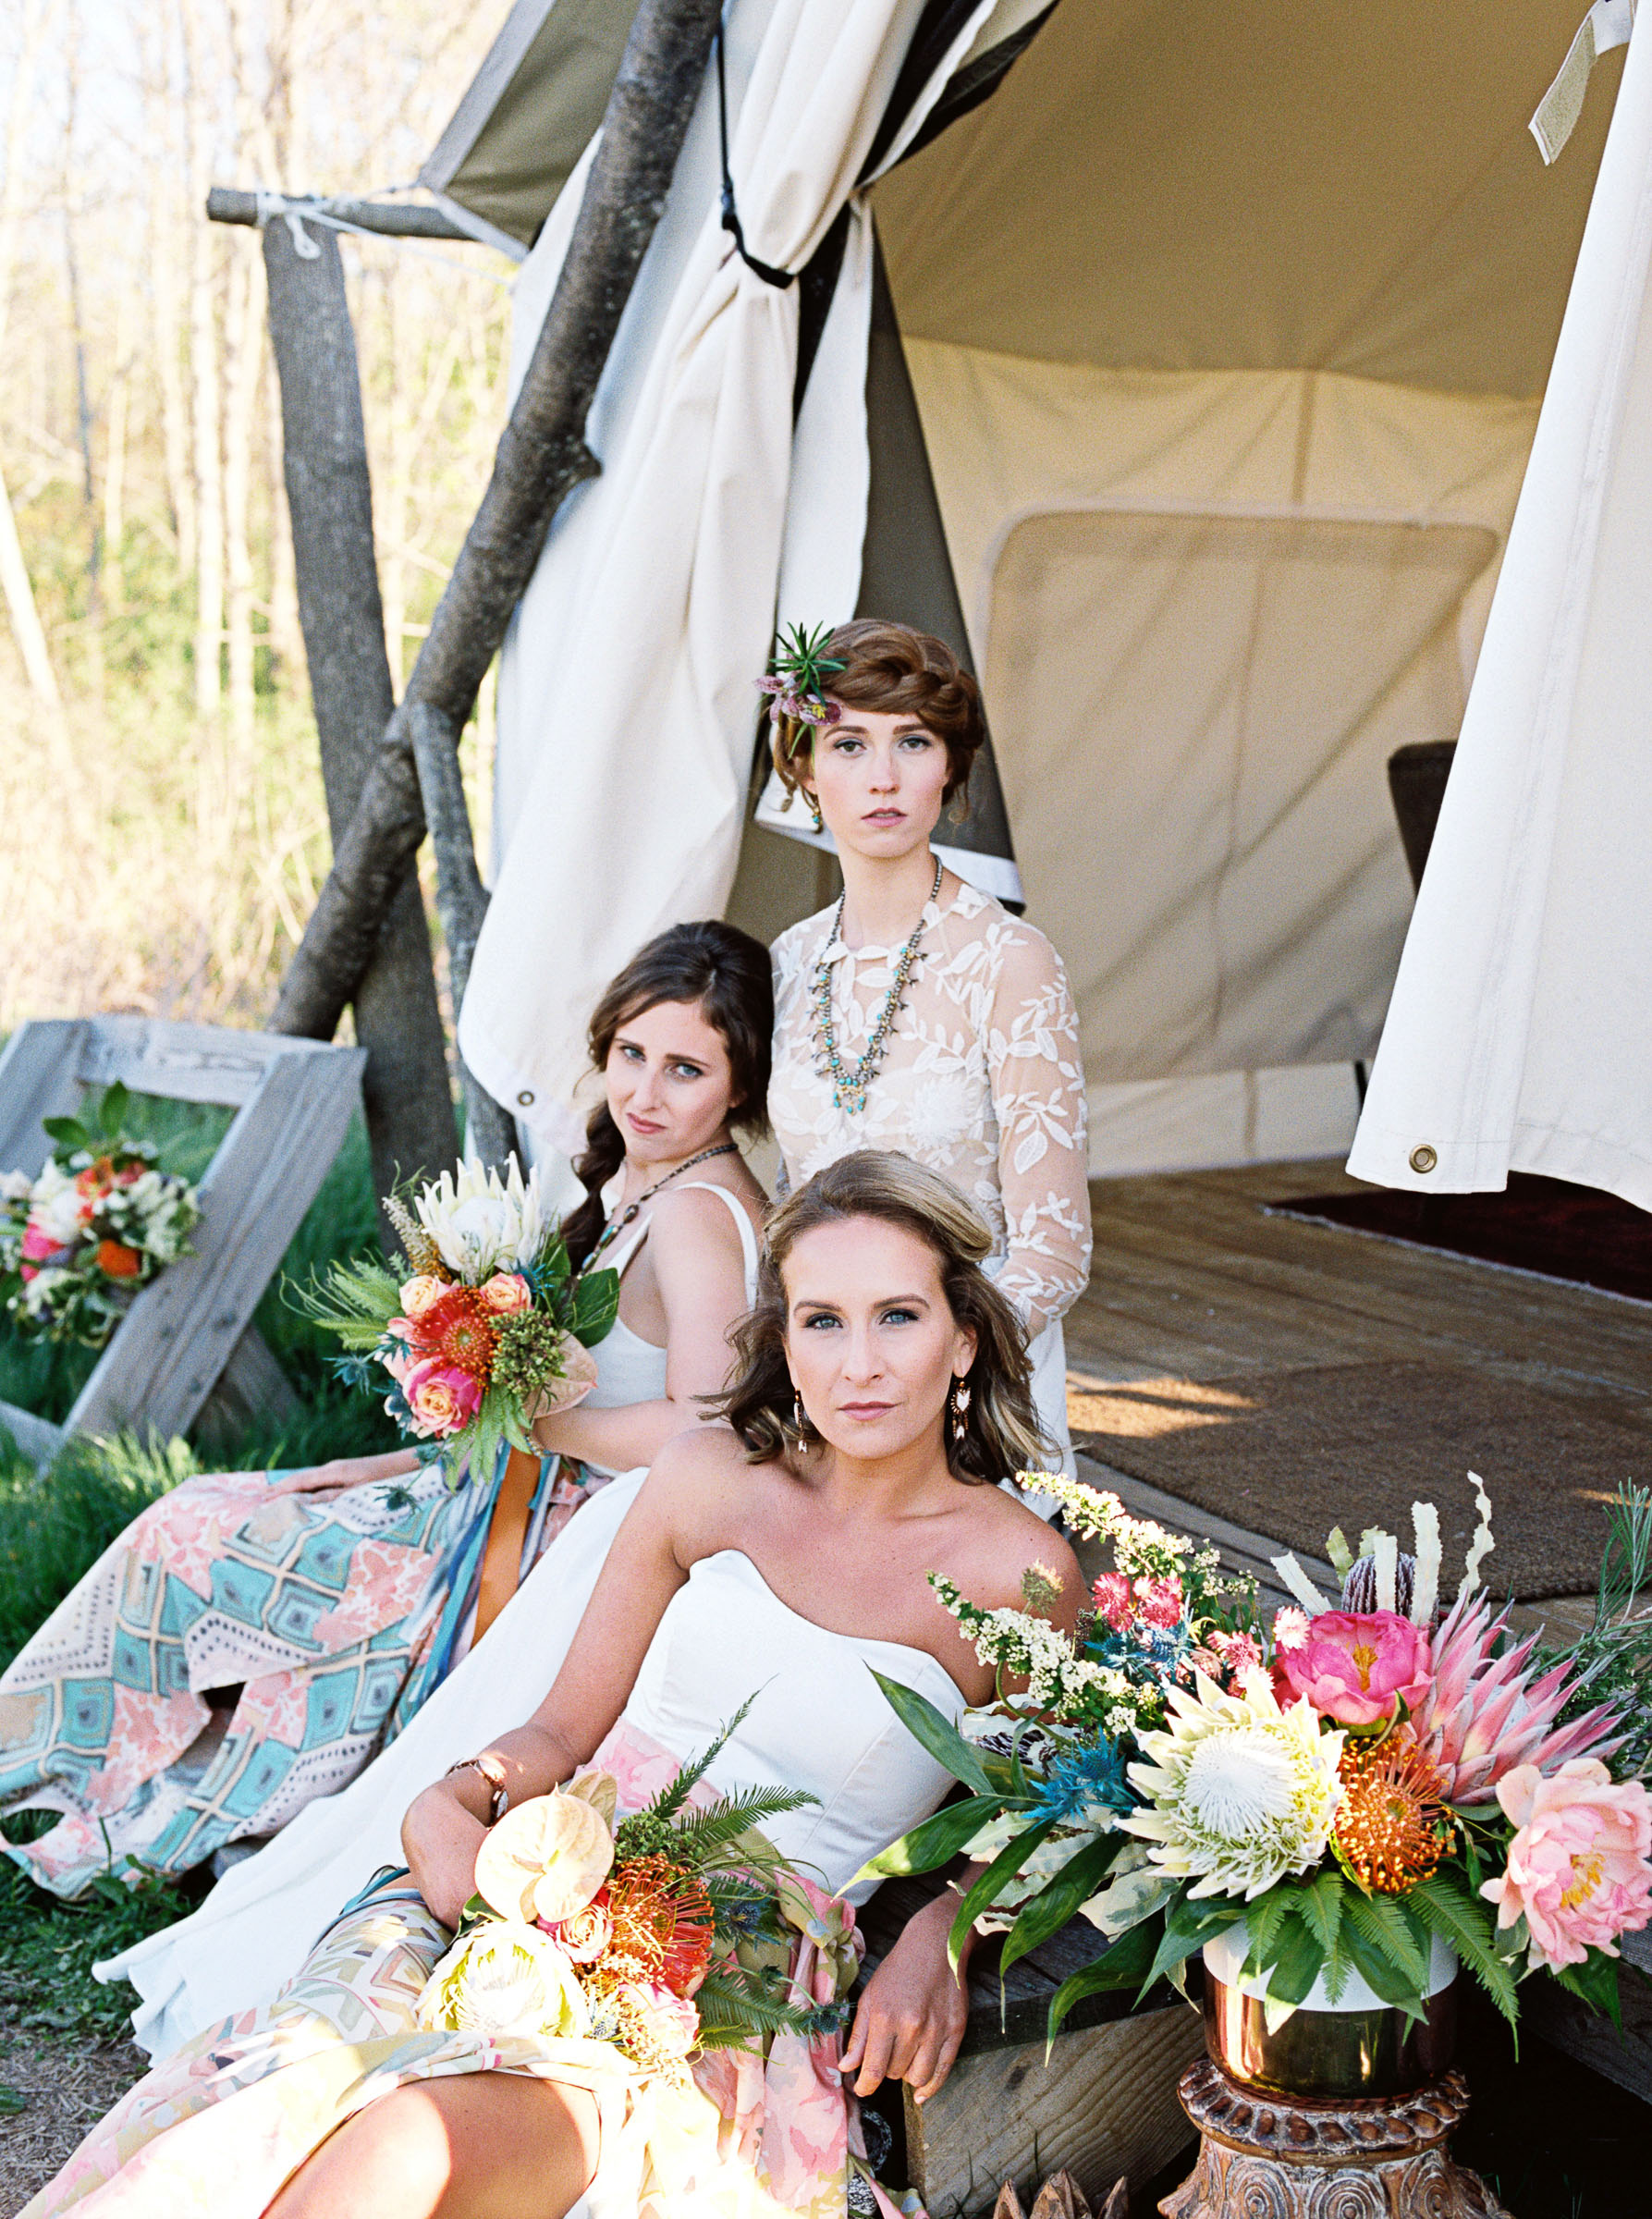 Alexandra-Elise-Photography-Ali-Reed-Film-Wedding-Photographer-New-York-Firelight-Camps-017